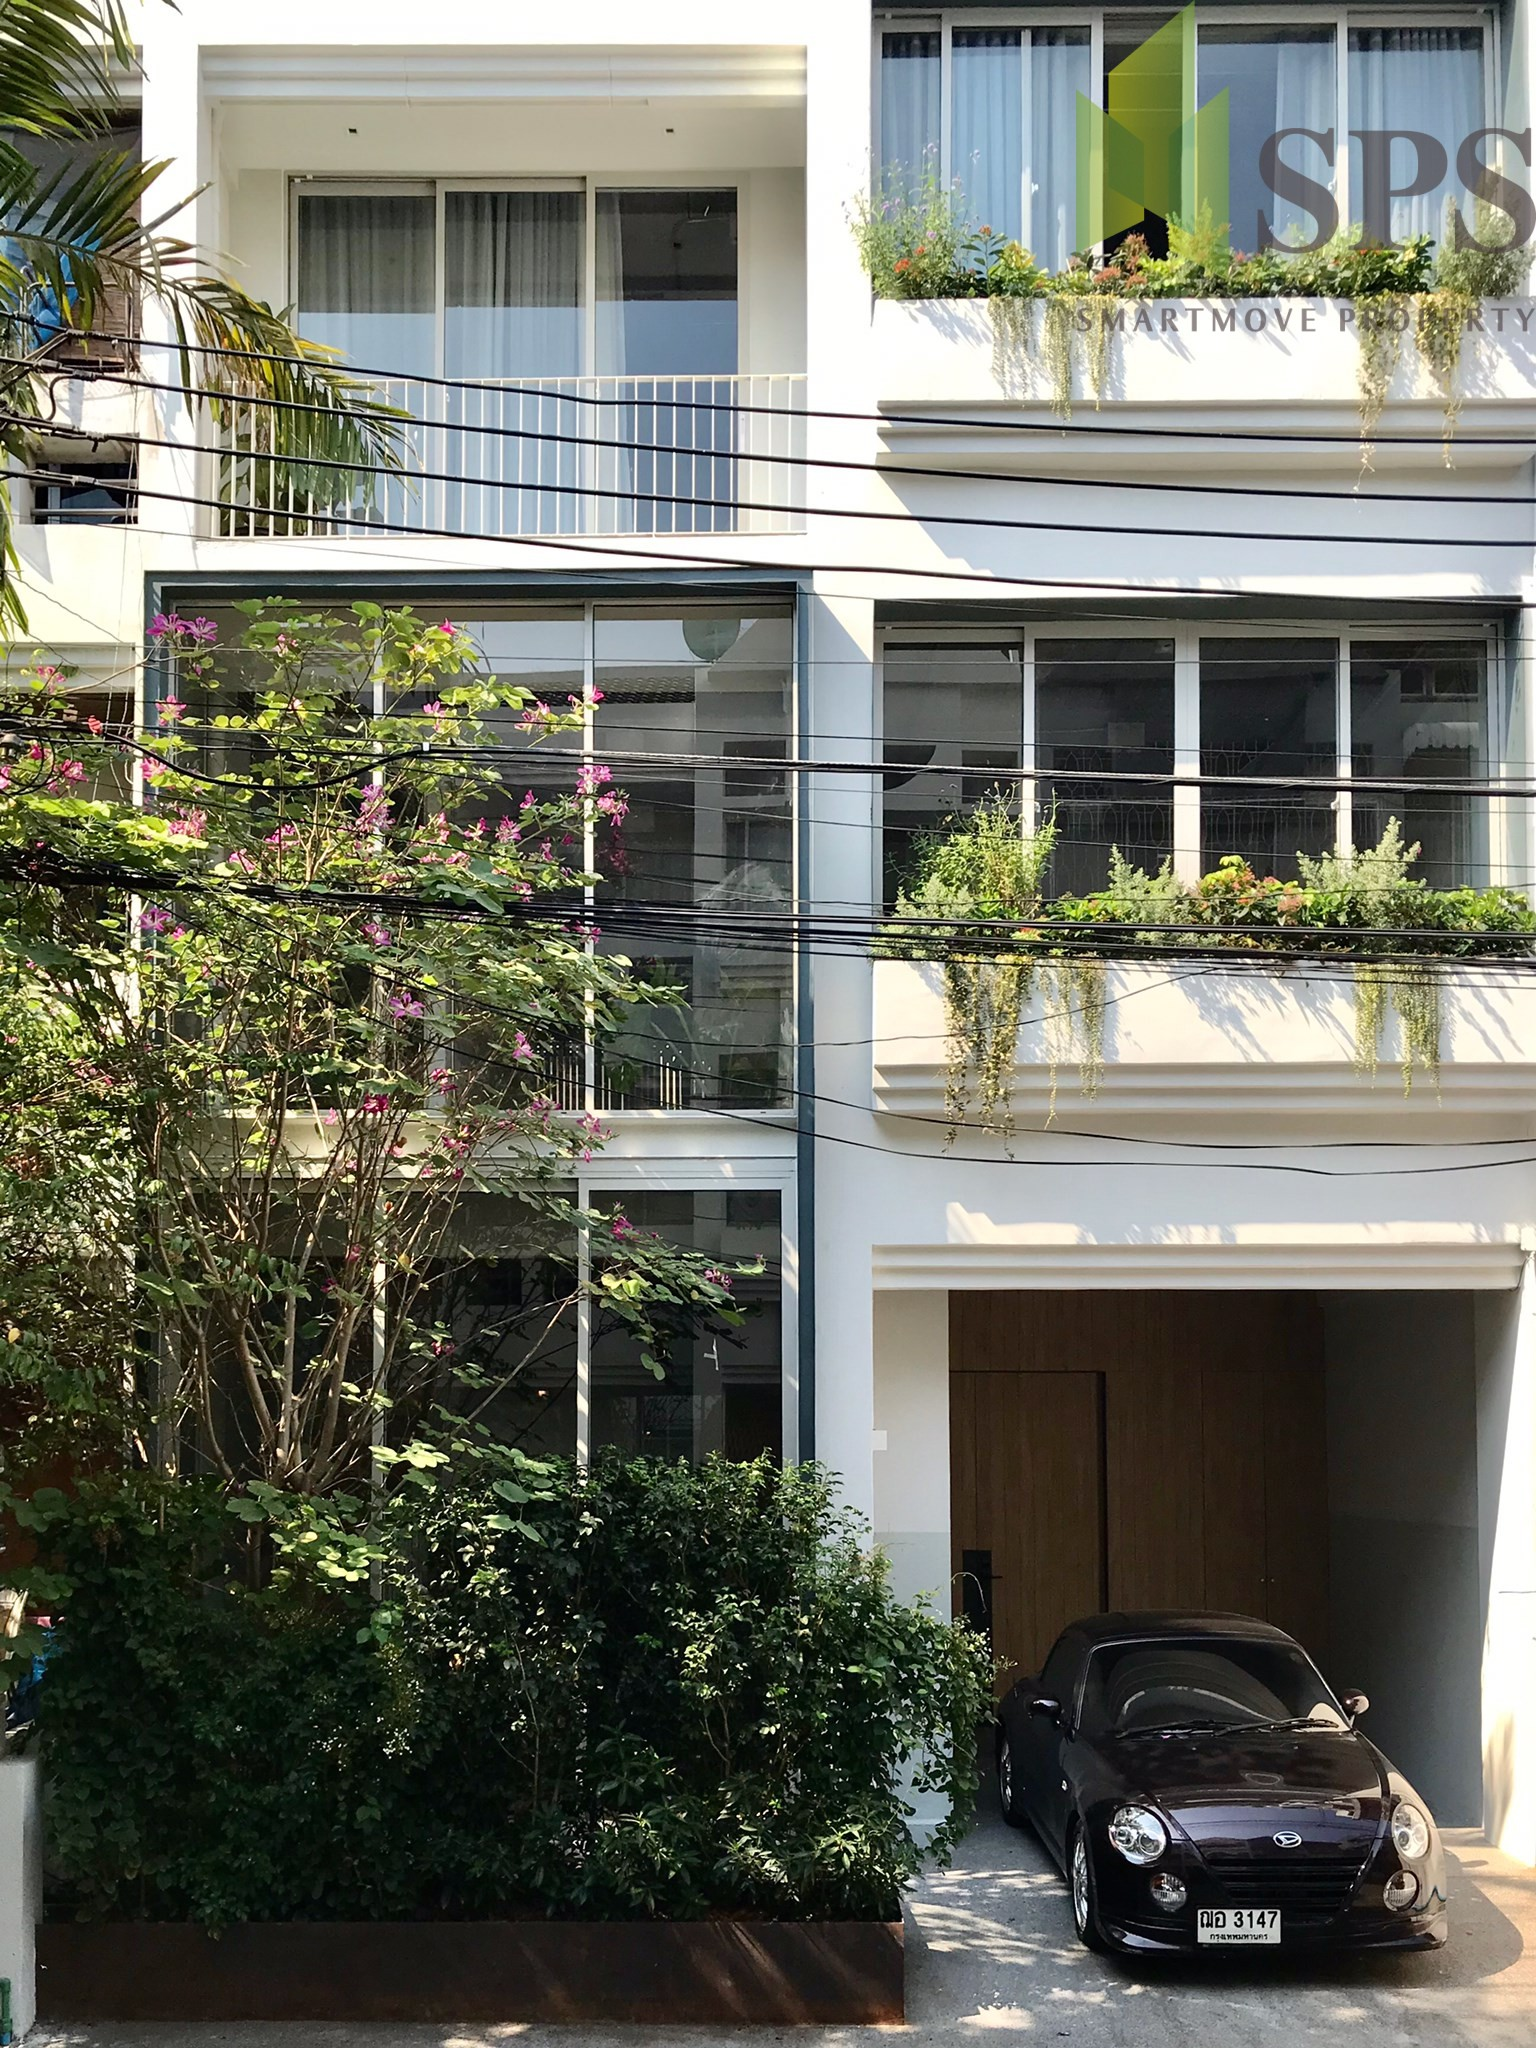 For Sale Townhouse 4 Storey in Sukhumvit 49/6 (Property ID:SPS-PP136)